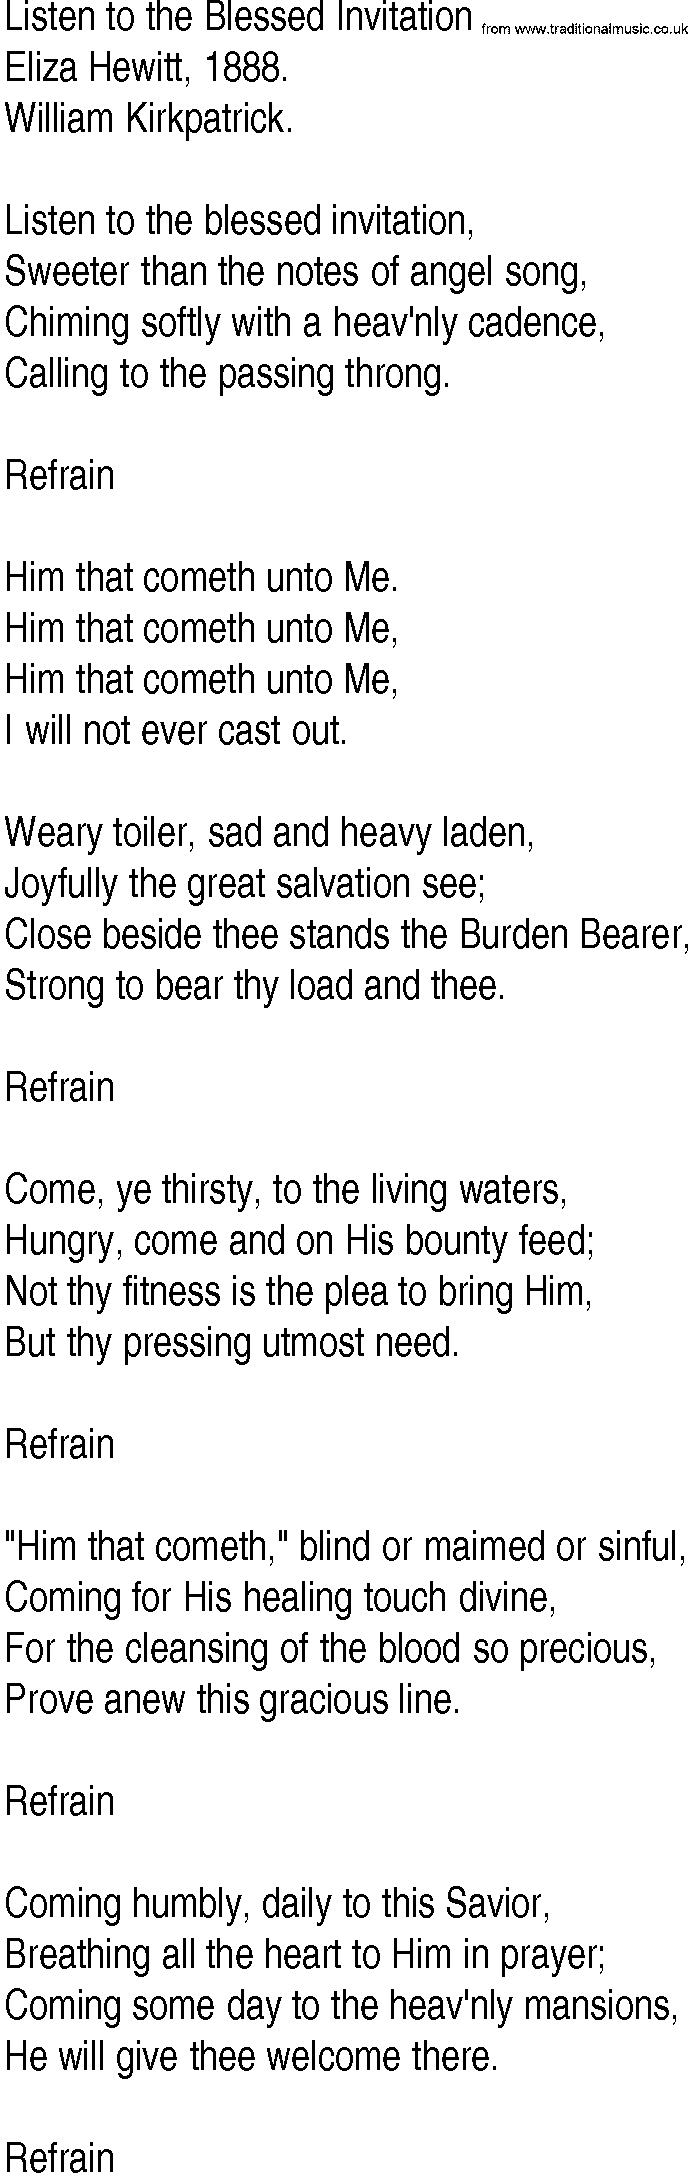 Hymn and gospel song lyrics for listen to the blessed invitation by hymn and gospel song listen to the blessed invitation by eliza hewitt lyrics stopboris Images